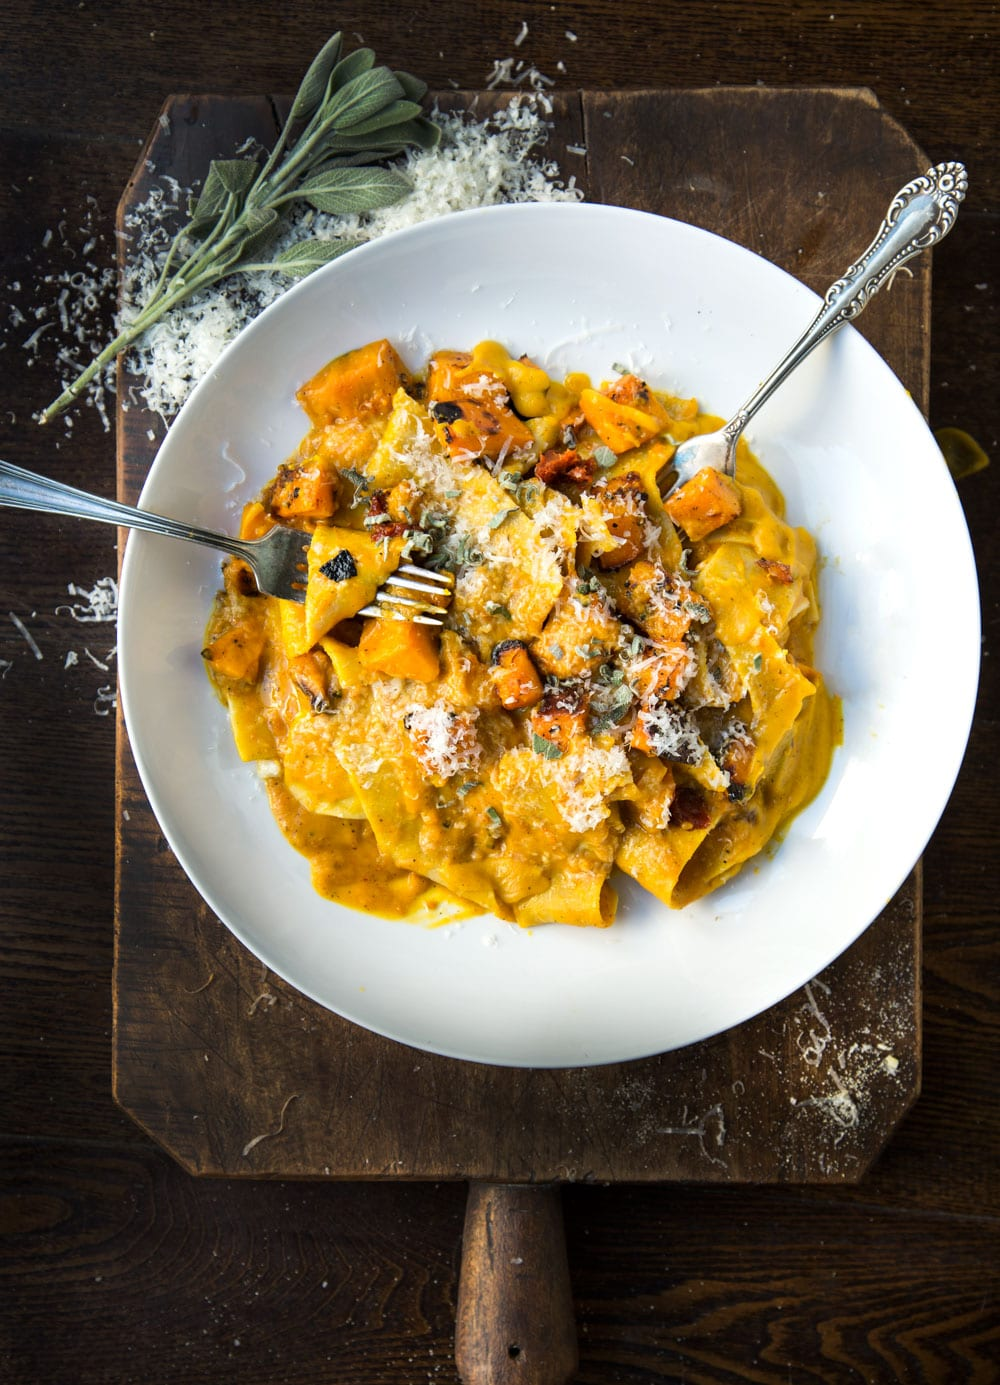 squash pasta in bowl with forks